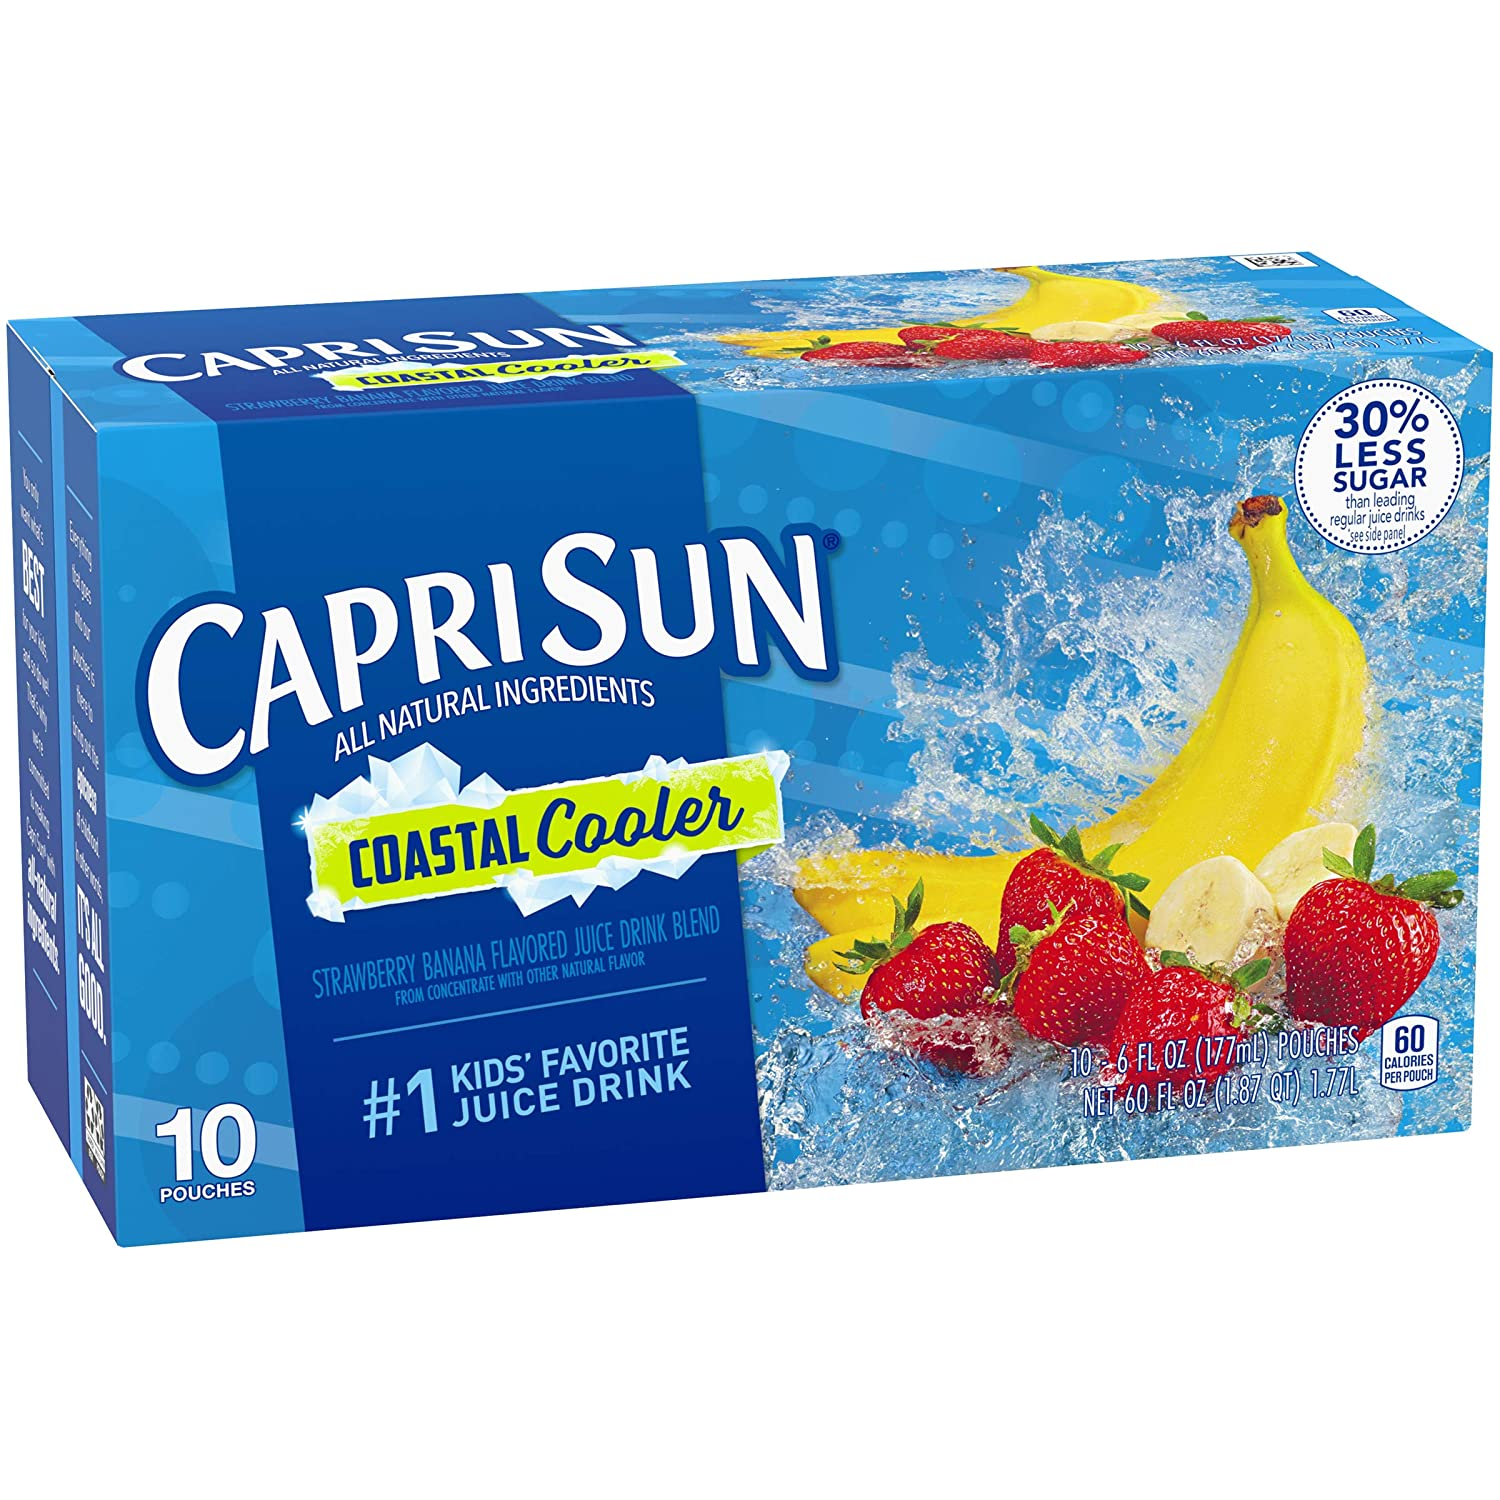 CAPRISUN COASTAL COOLER STRAWBERRY BANANA FLAVORED JUICE DRINK BLEND 10 CT